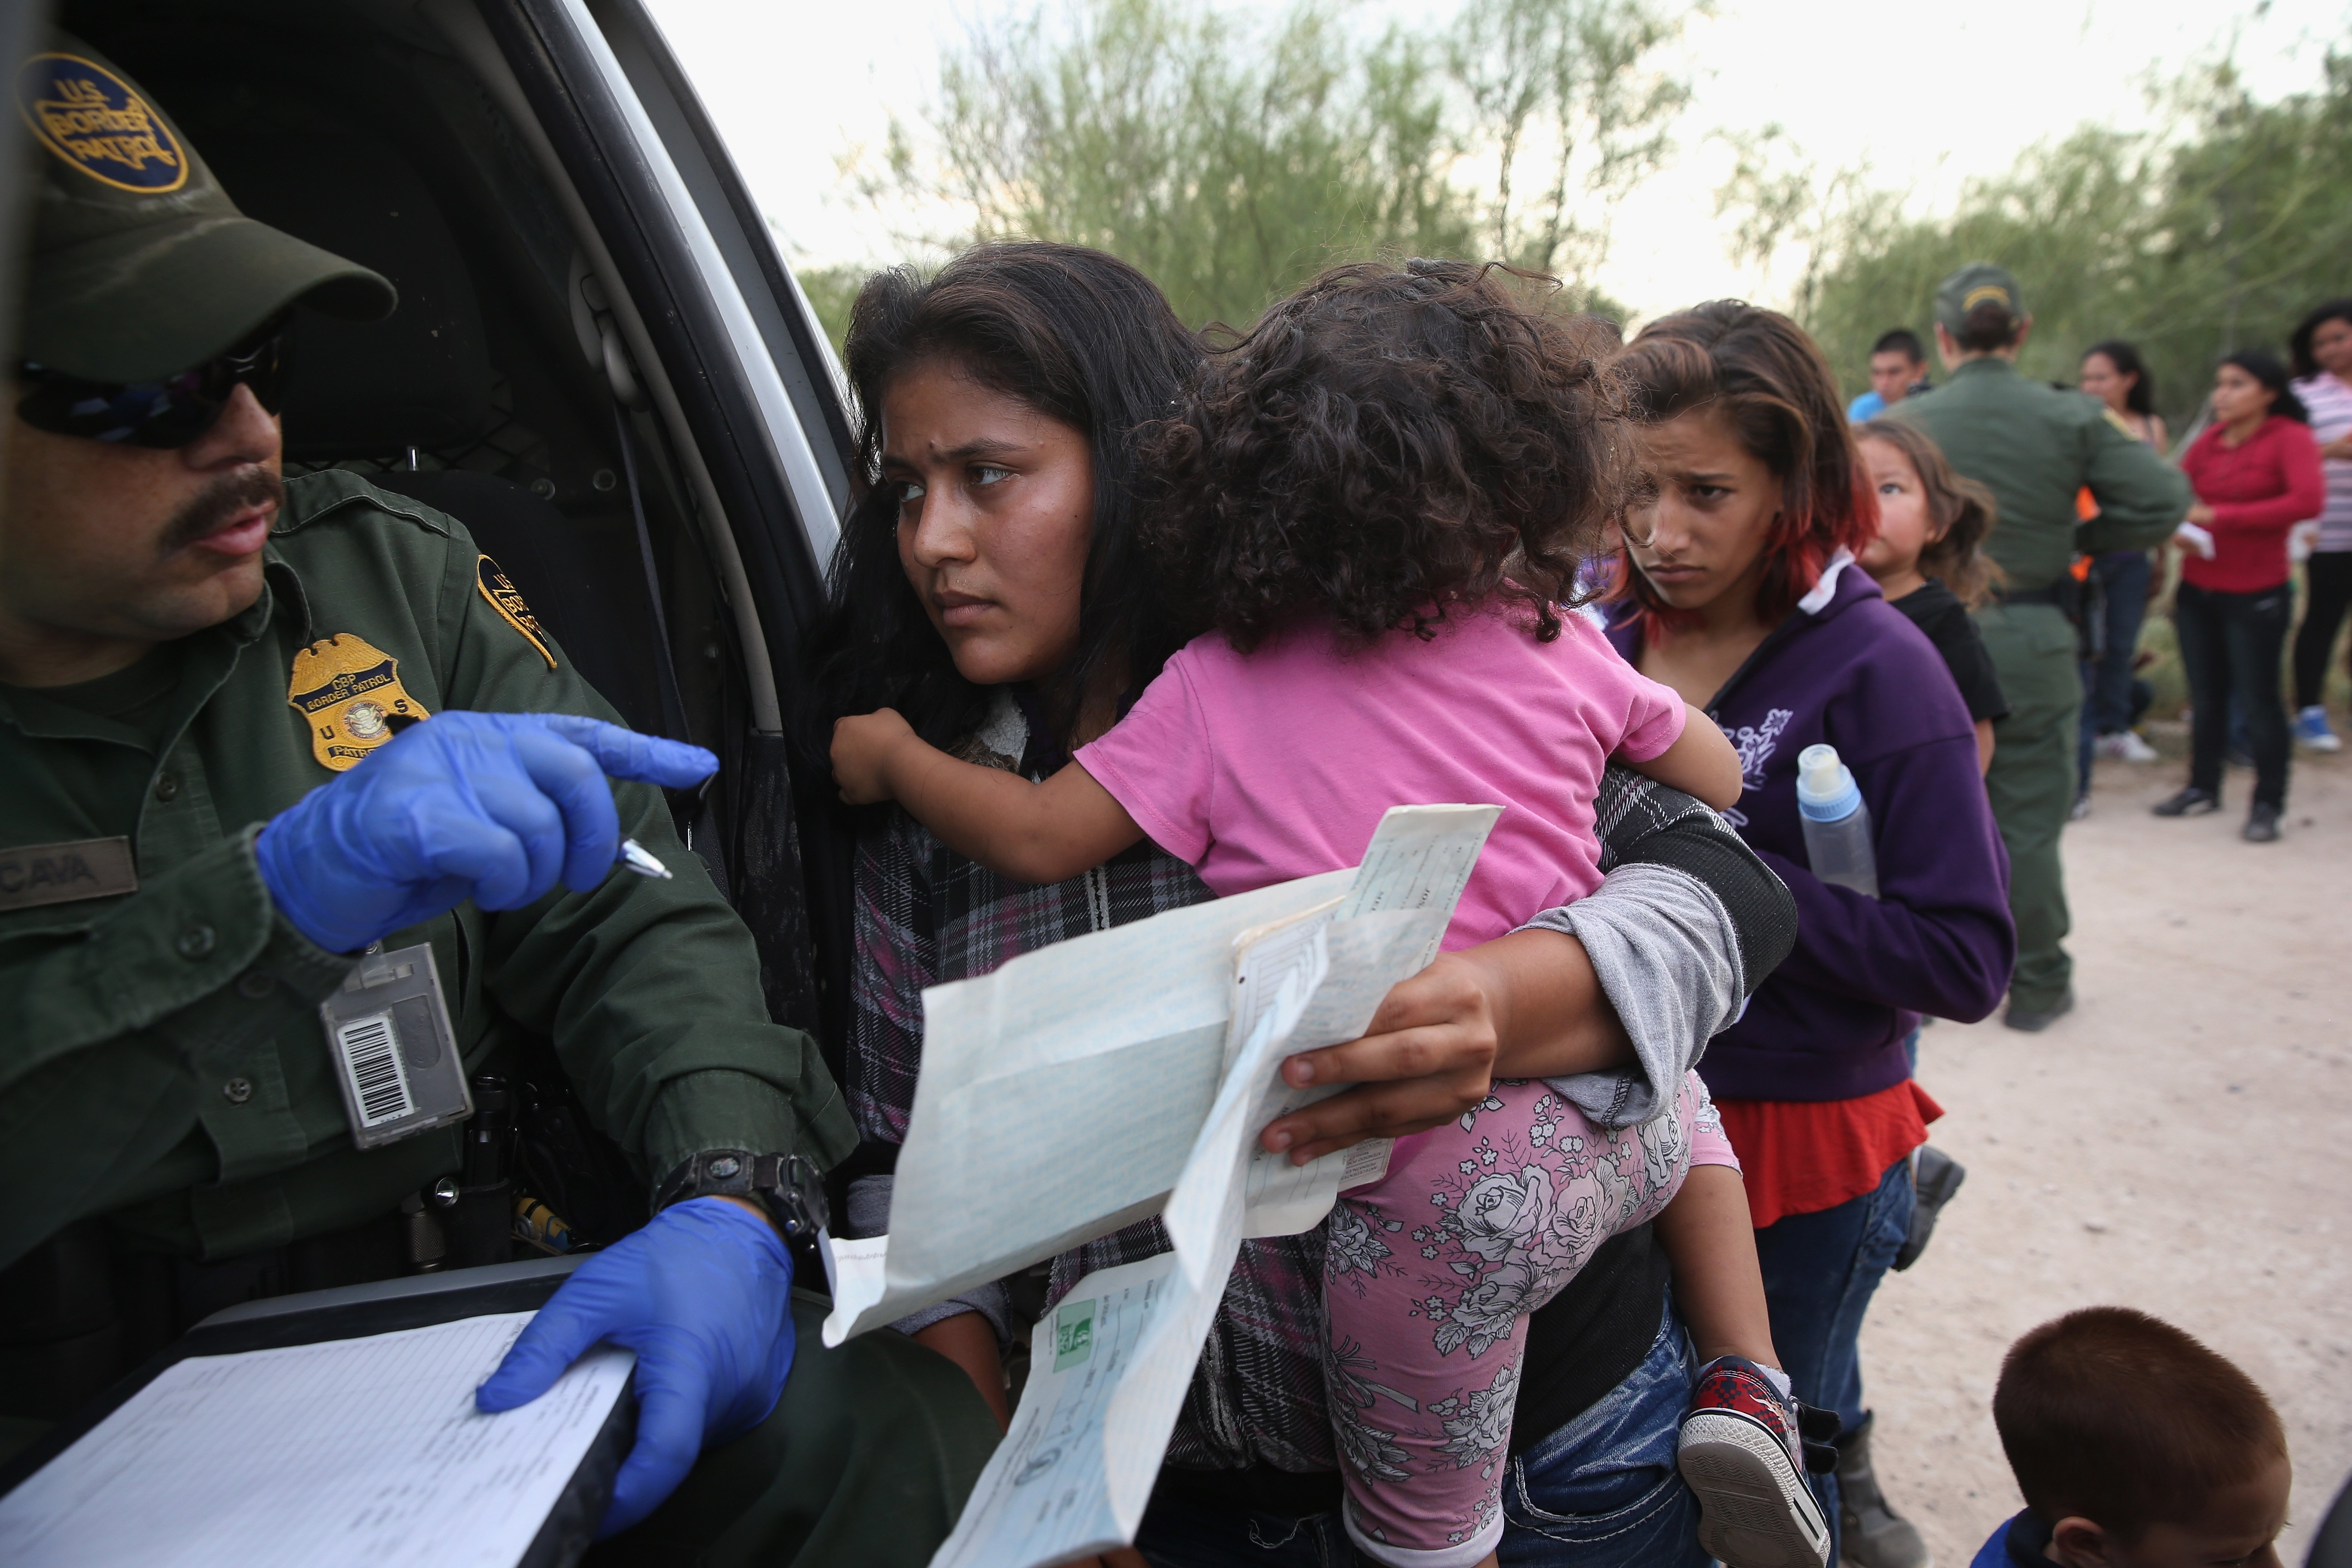 Immigrant Melida Patricio Castro from Honduras shows a birth certificate for her daughter Maria Celeste, 2, to a U.S. Border Patrol agent near the U.S.-Mexico border near Mission, Texas on July 24, 2014.